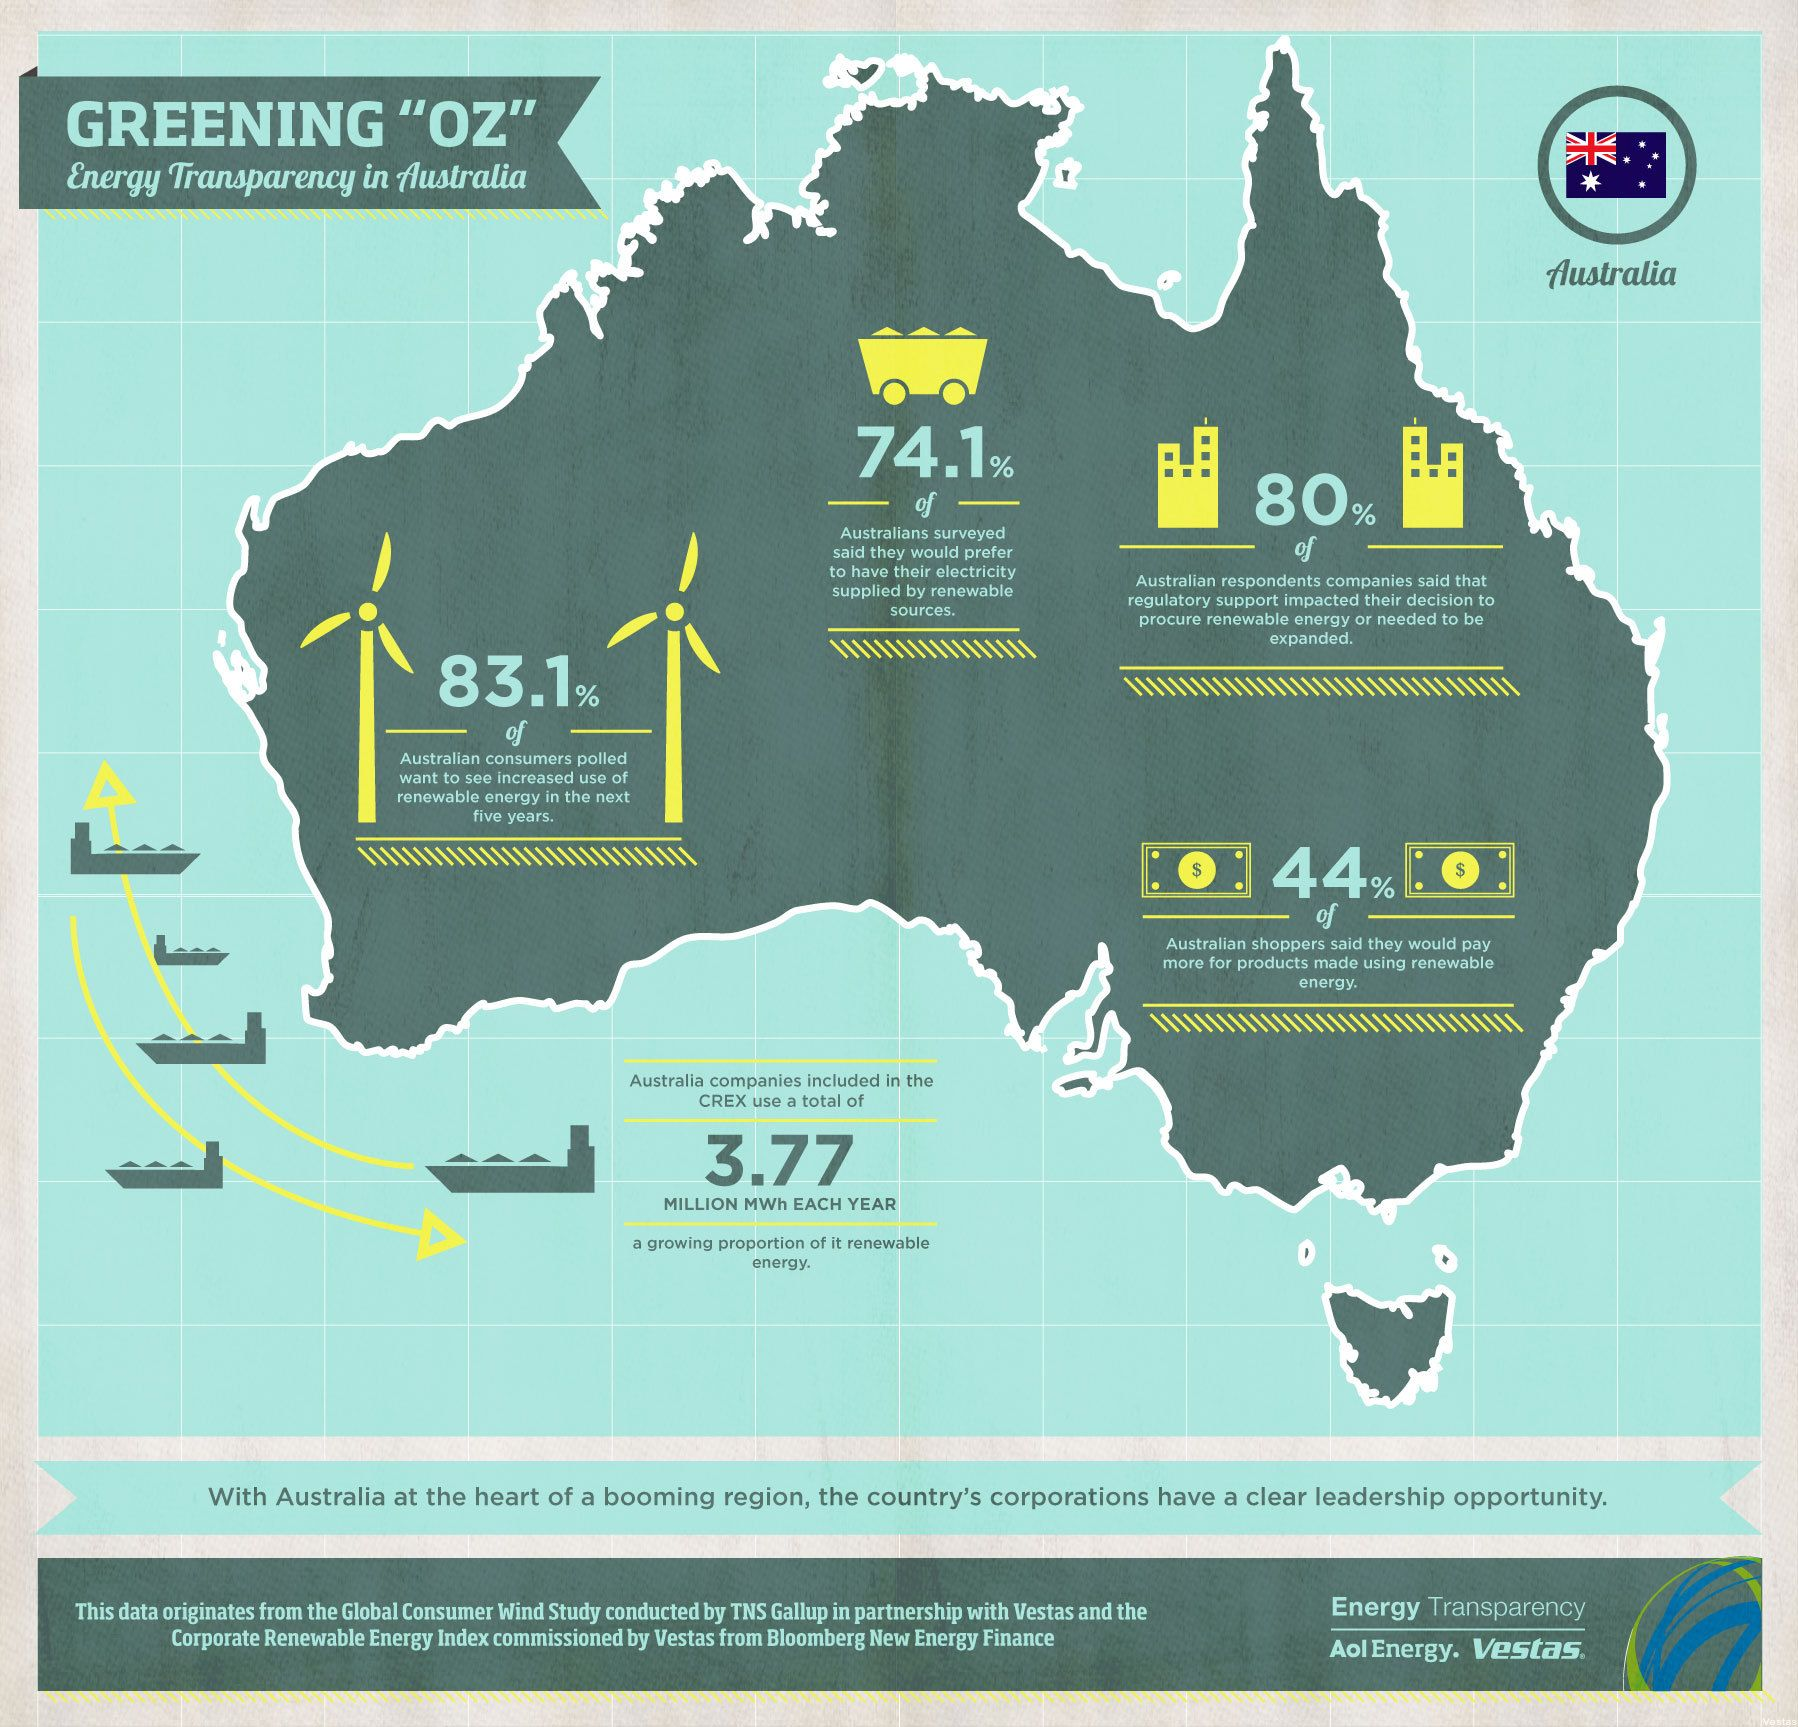 Australian Energy Greening Oz Infographic